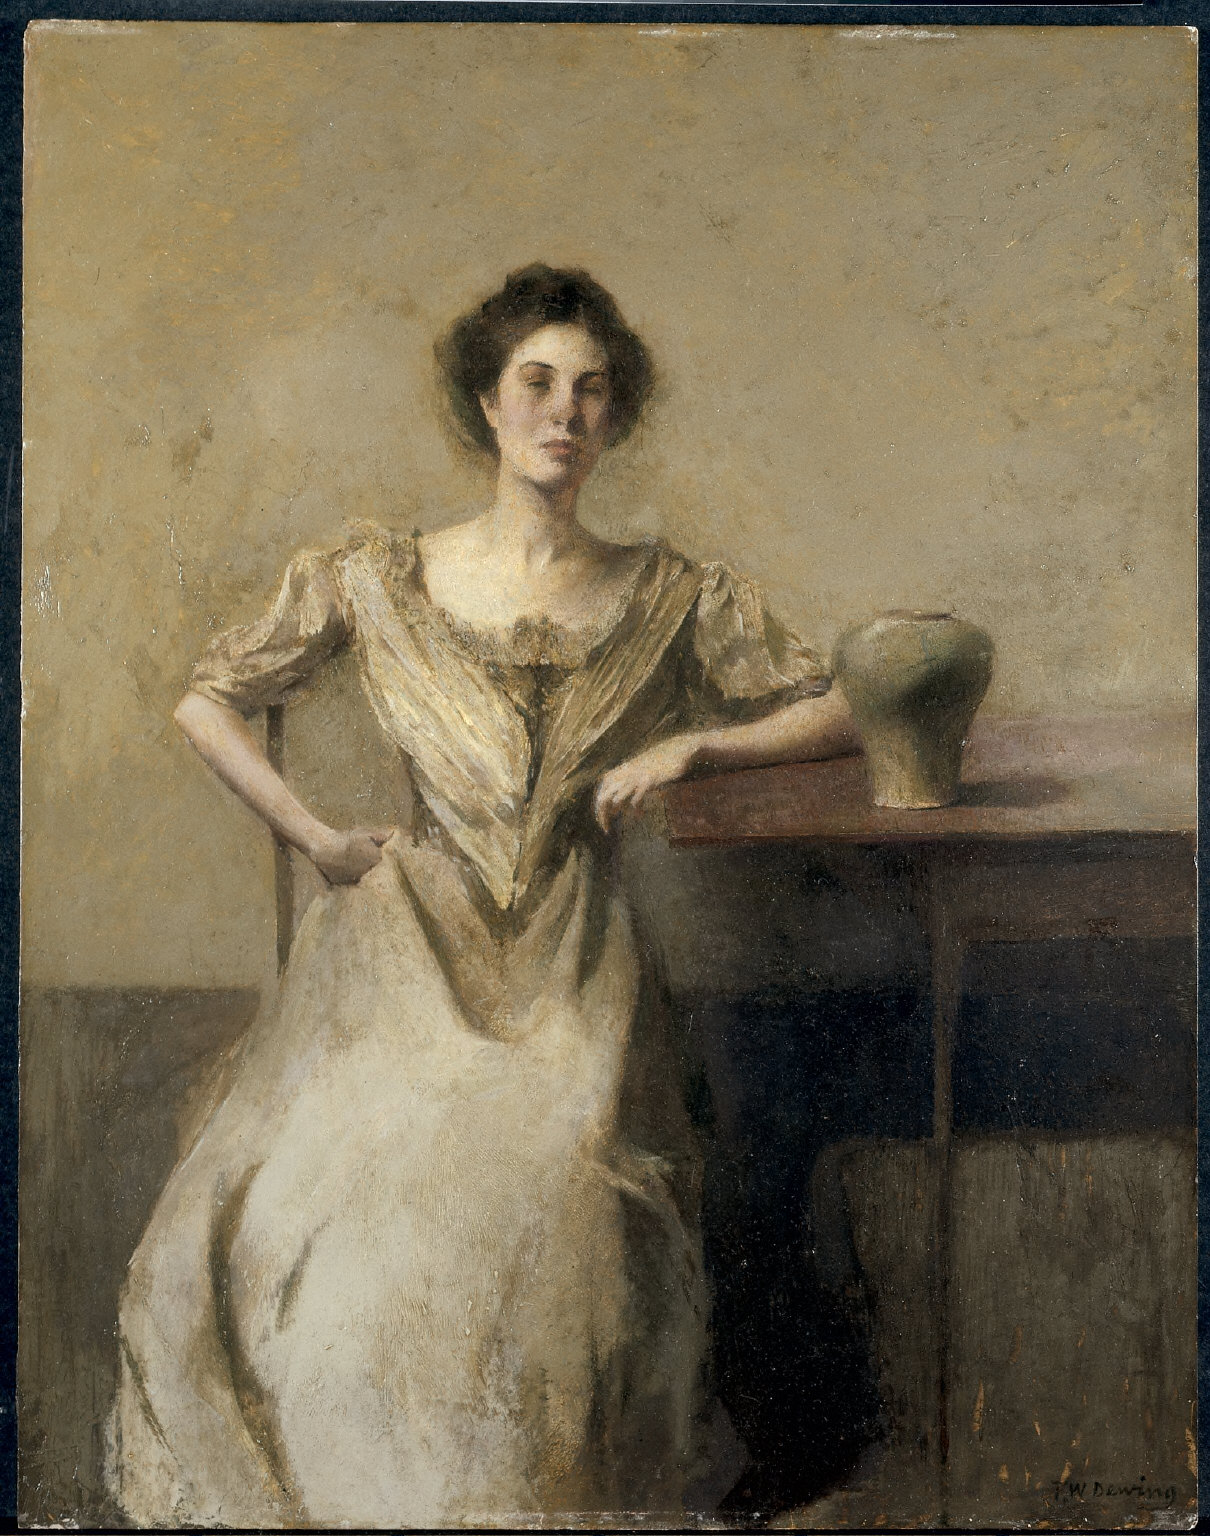 Woman Seated at Table